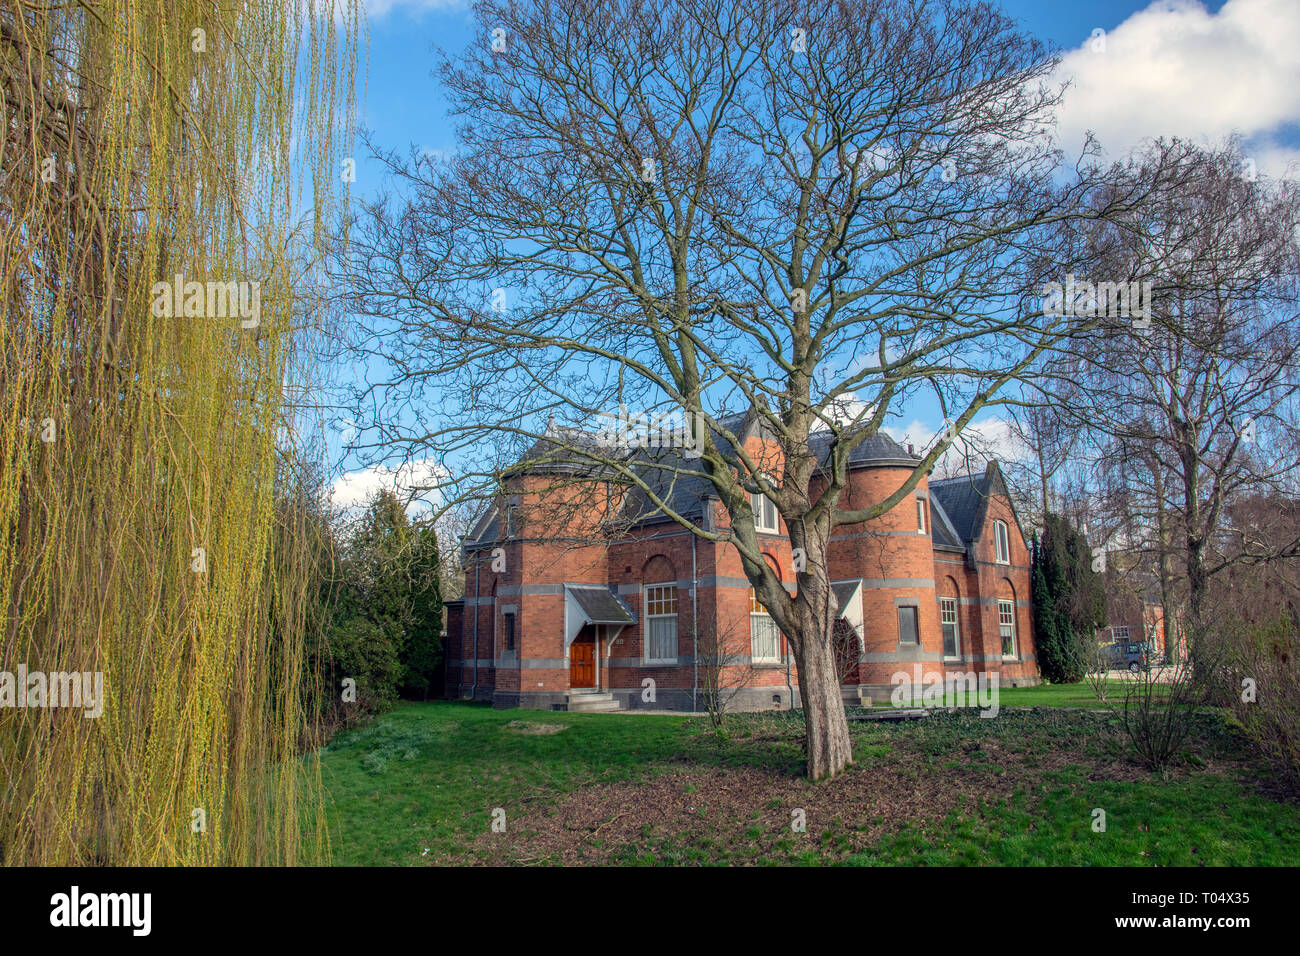 Old Building At The Nieuwe Ooster Cemetery Amsterdam The Netherlands 2019 Stock Photo